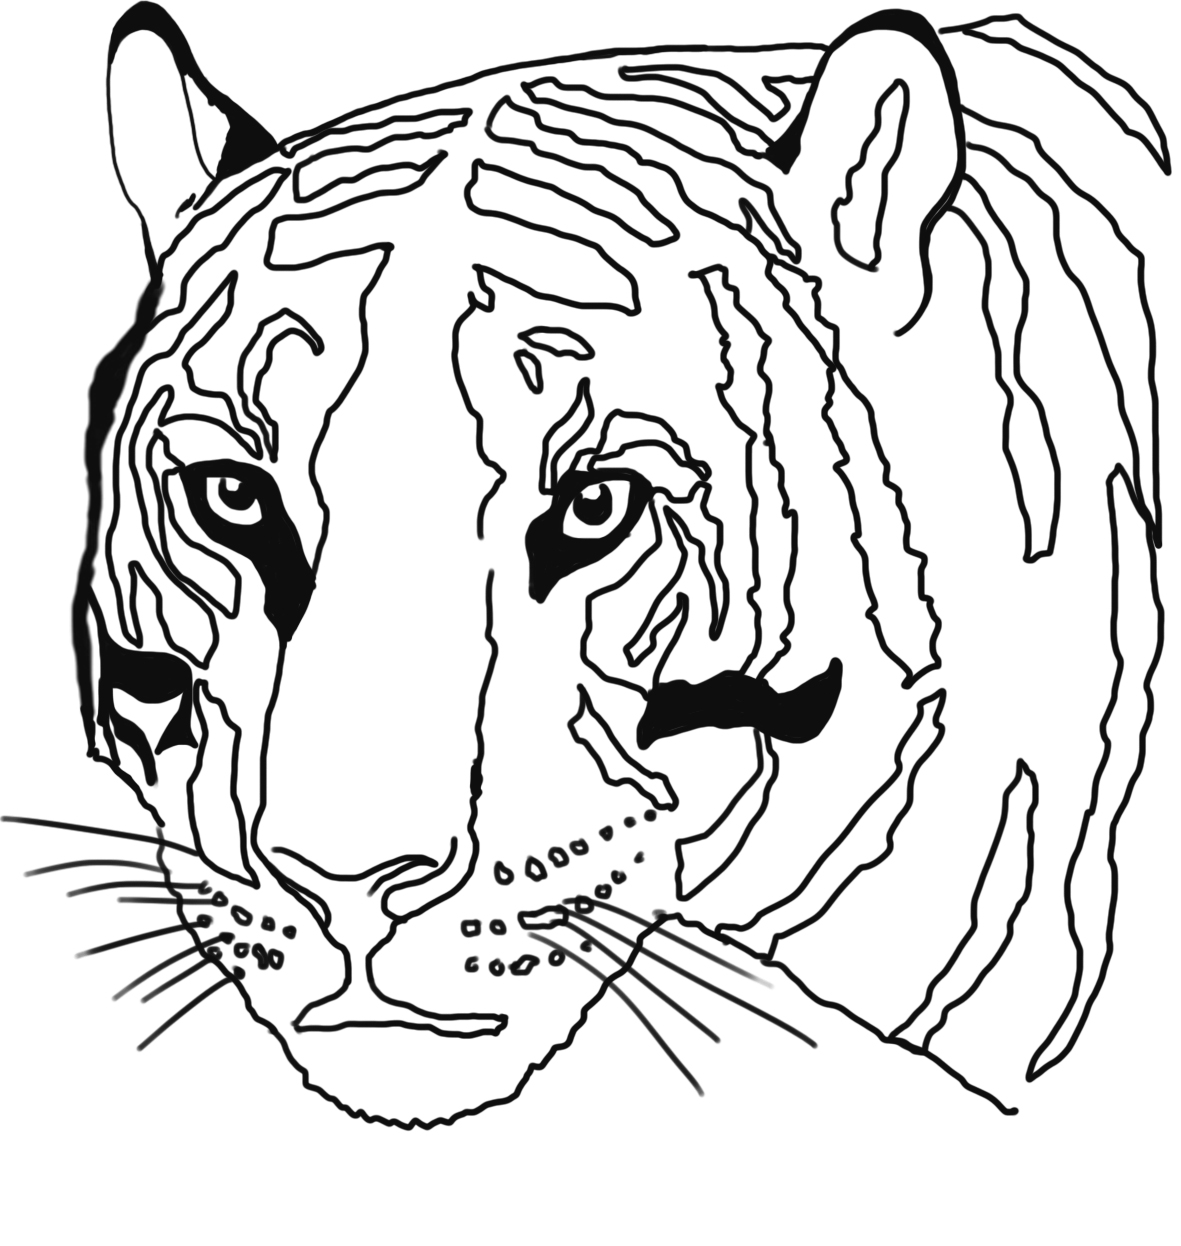 tiger-head coloring page